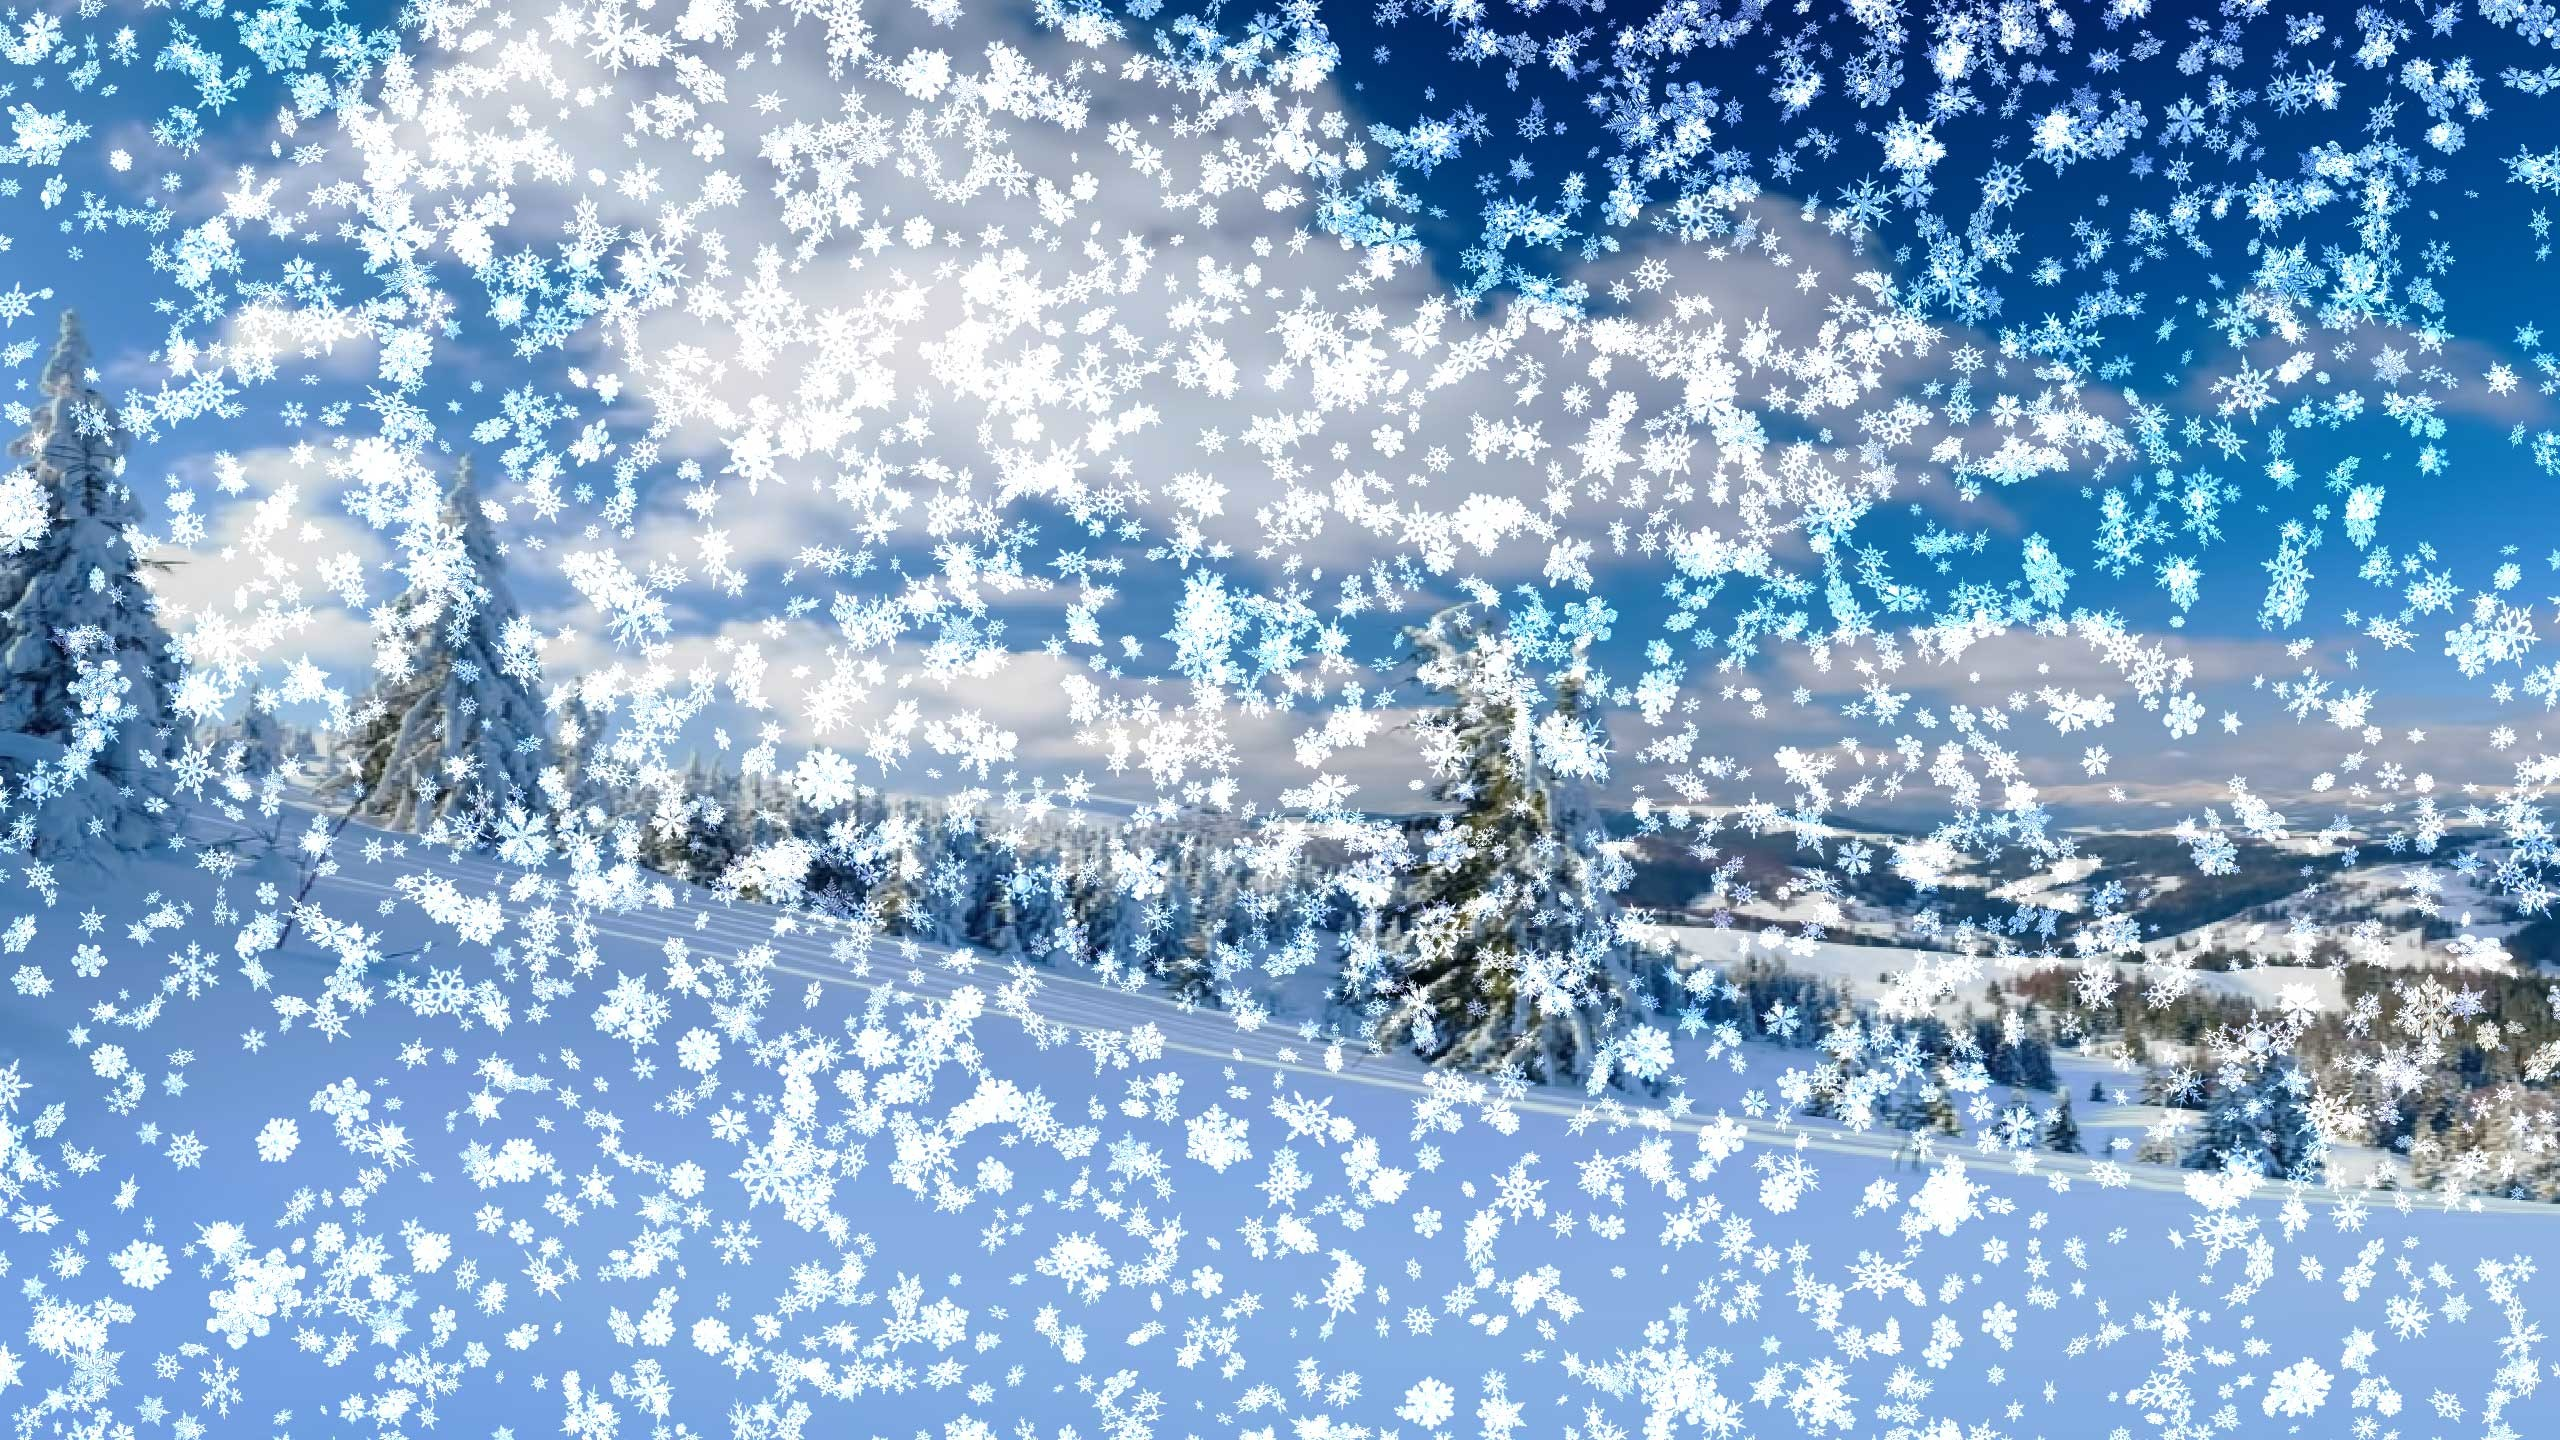 Winter Snow Wallpaper Background 55 Images